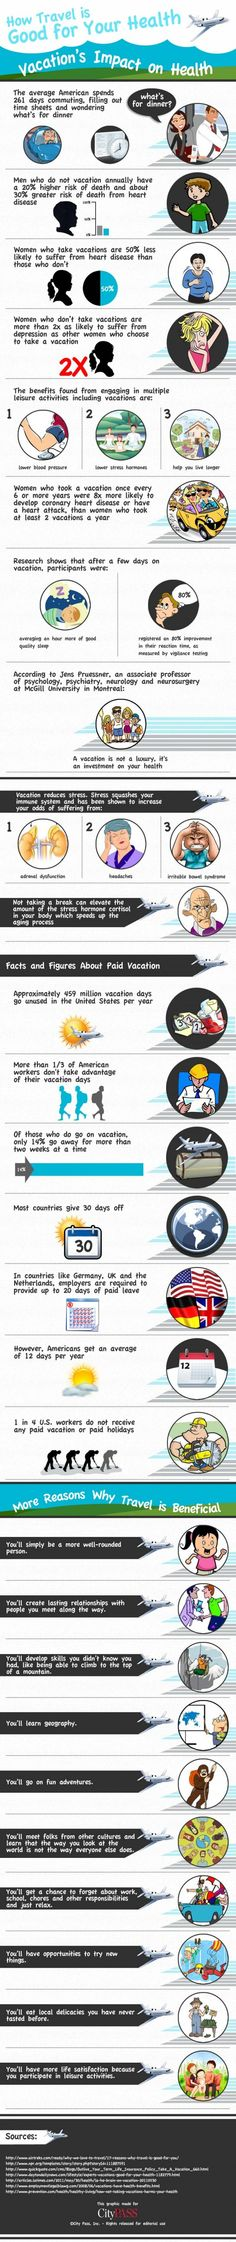 Enter Our Cash Giveaway!  Submit Infographics  Need an infographic?  Create Infographics  Infographic Categories  INFOGRAPHIC: HOW TRAVEL IS GOOD FOR YOUR HEALTH